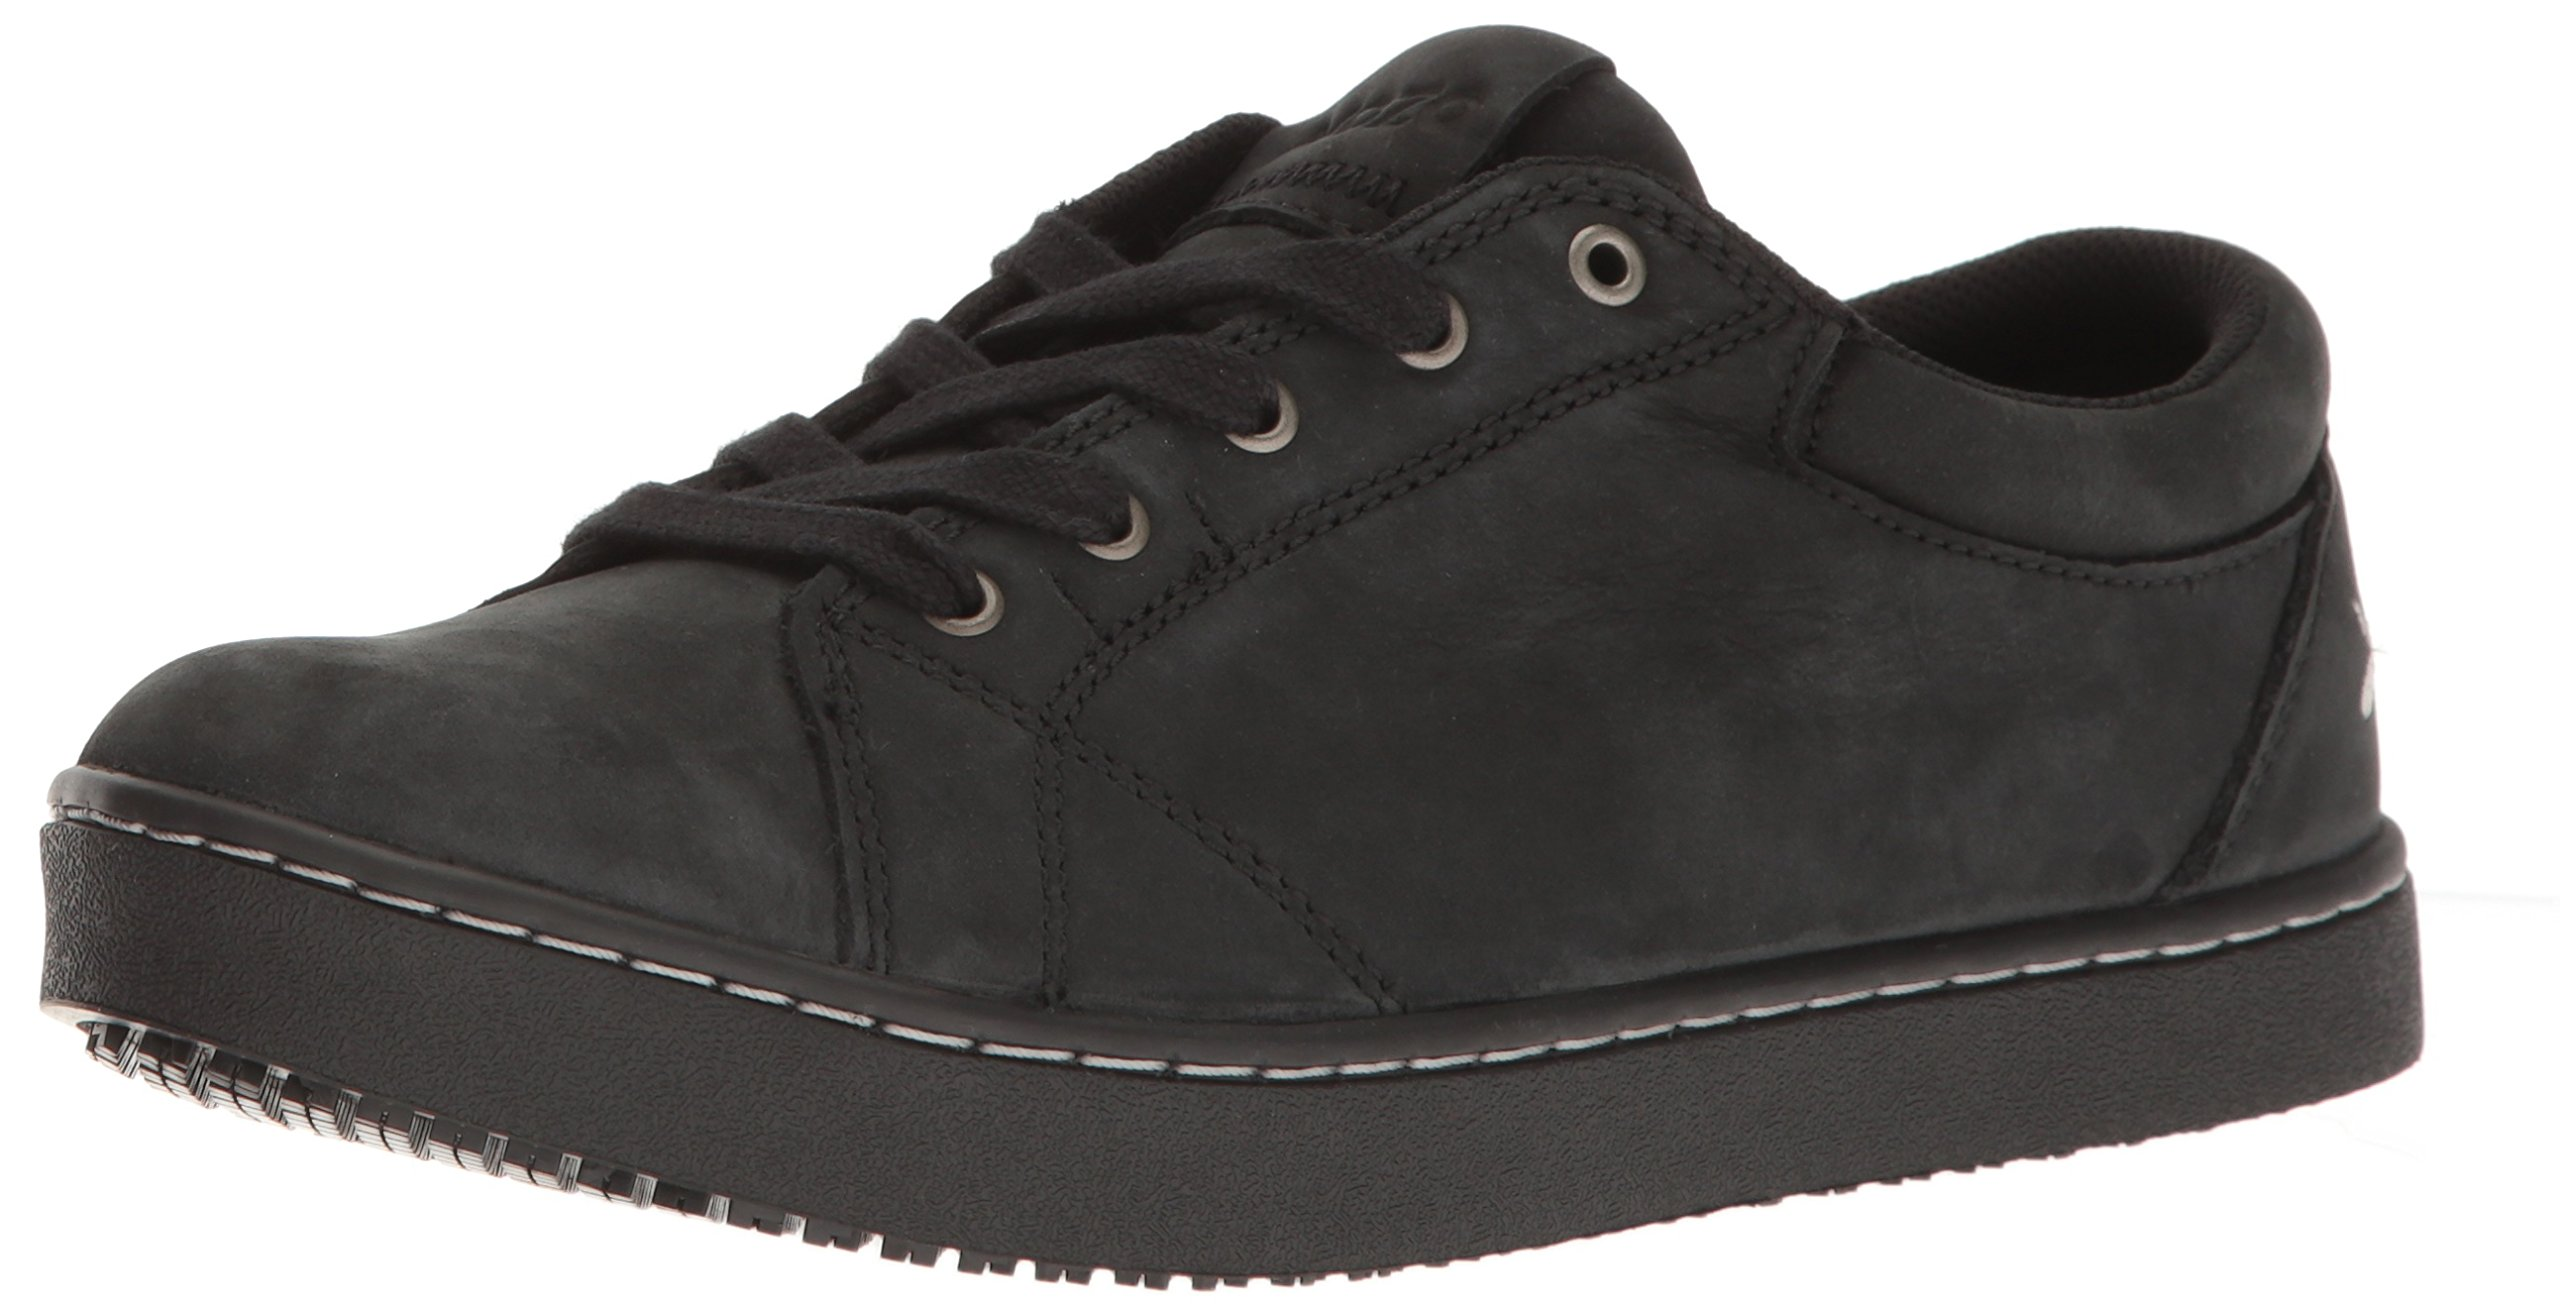 MOZO Women's Mavi Food Service Shoe, Black, 8.5 B US